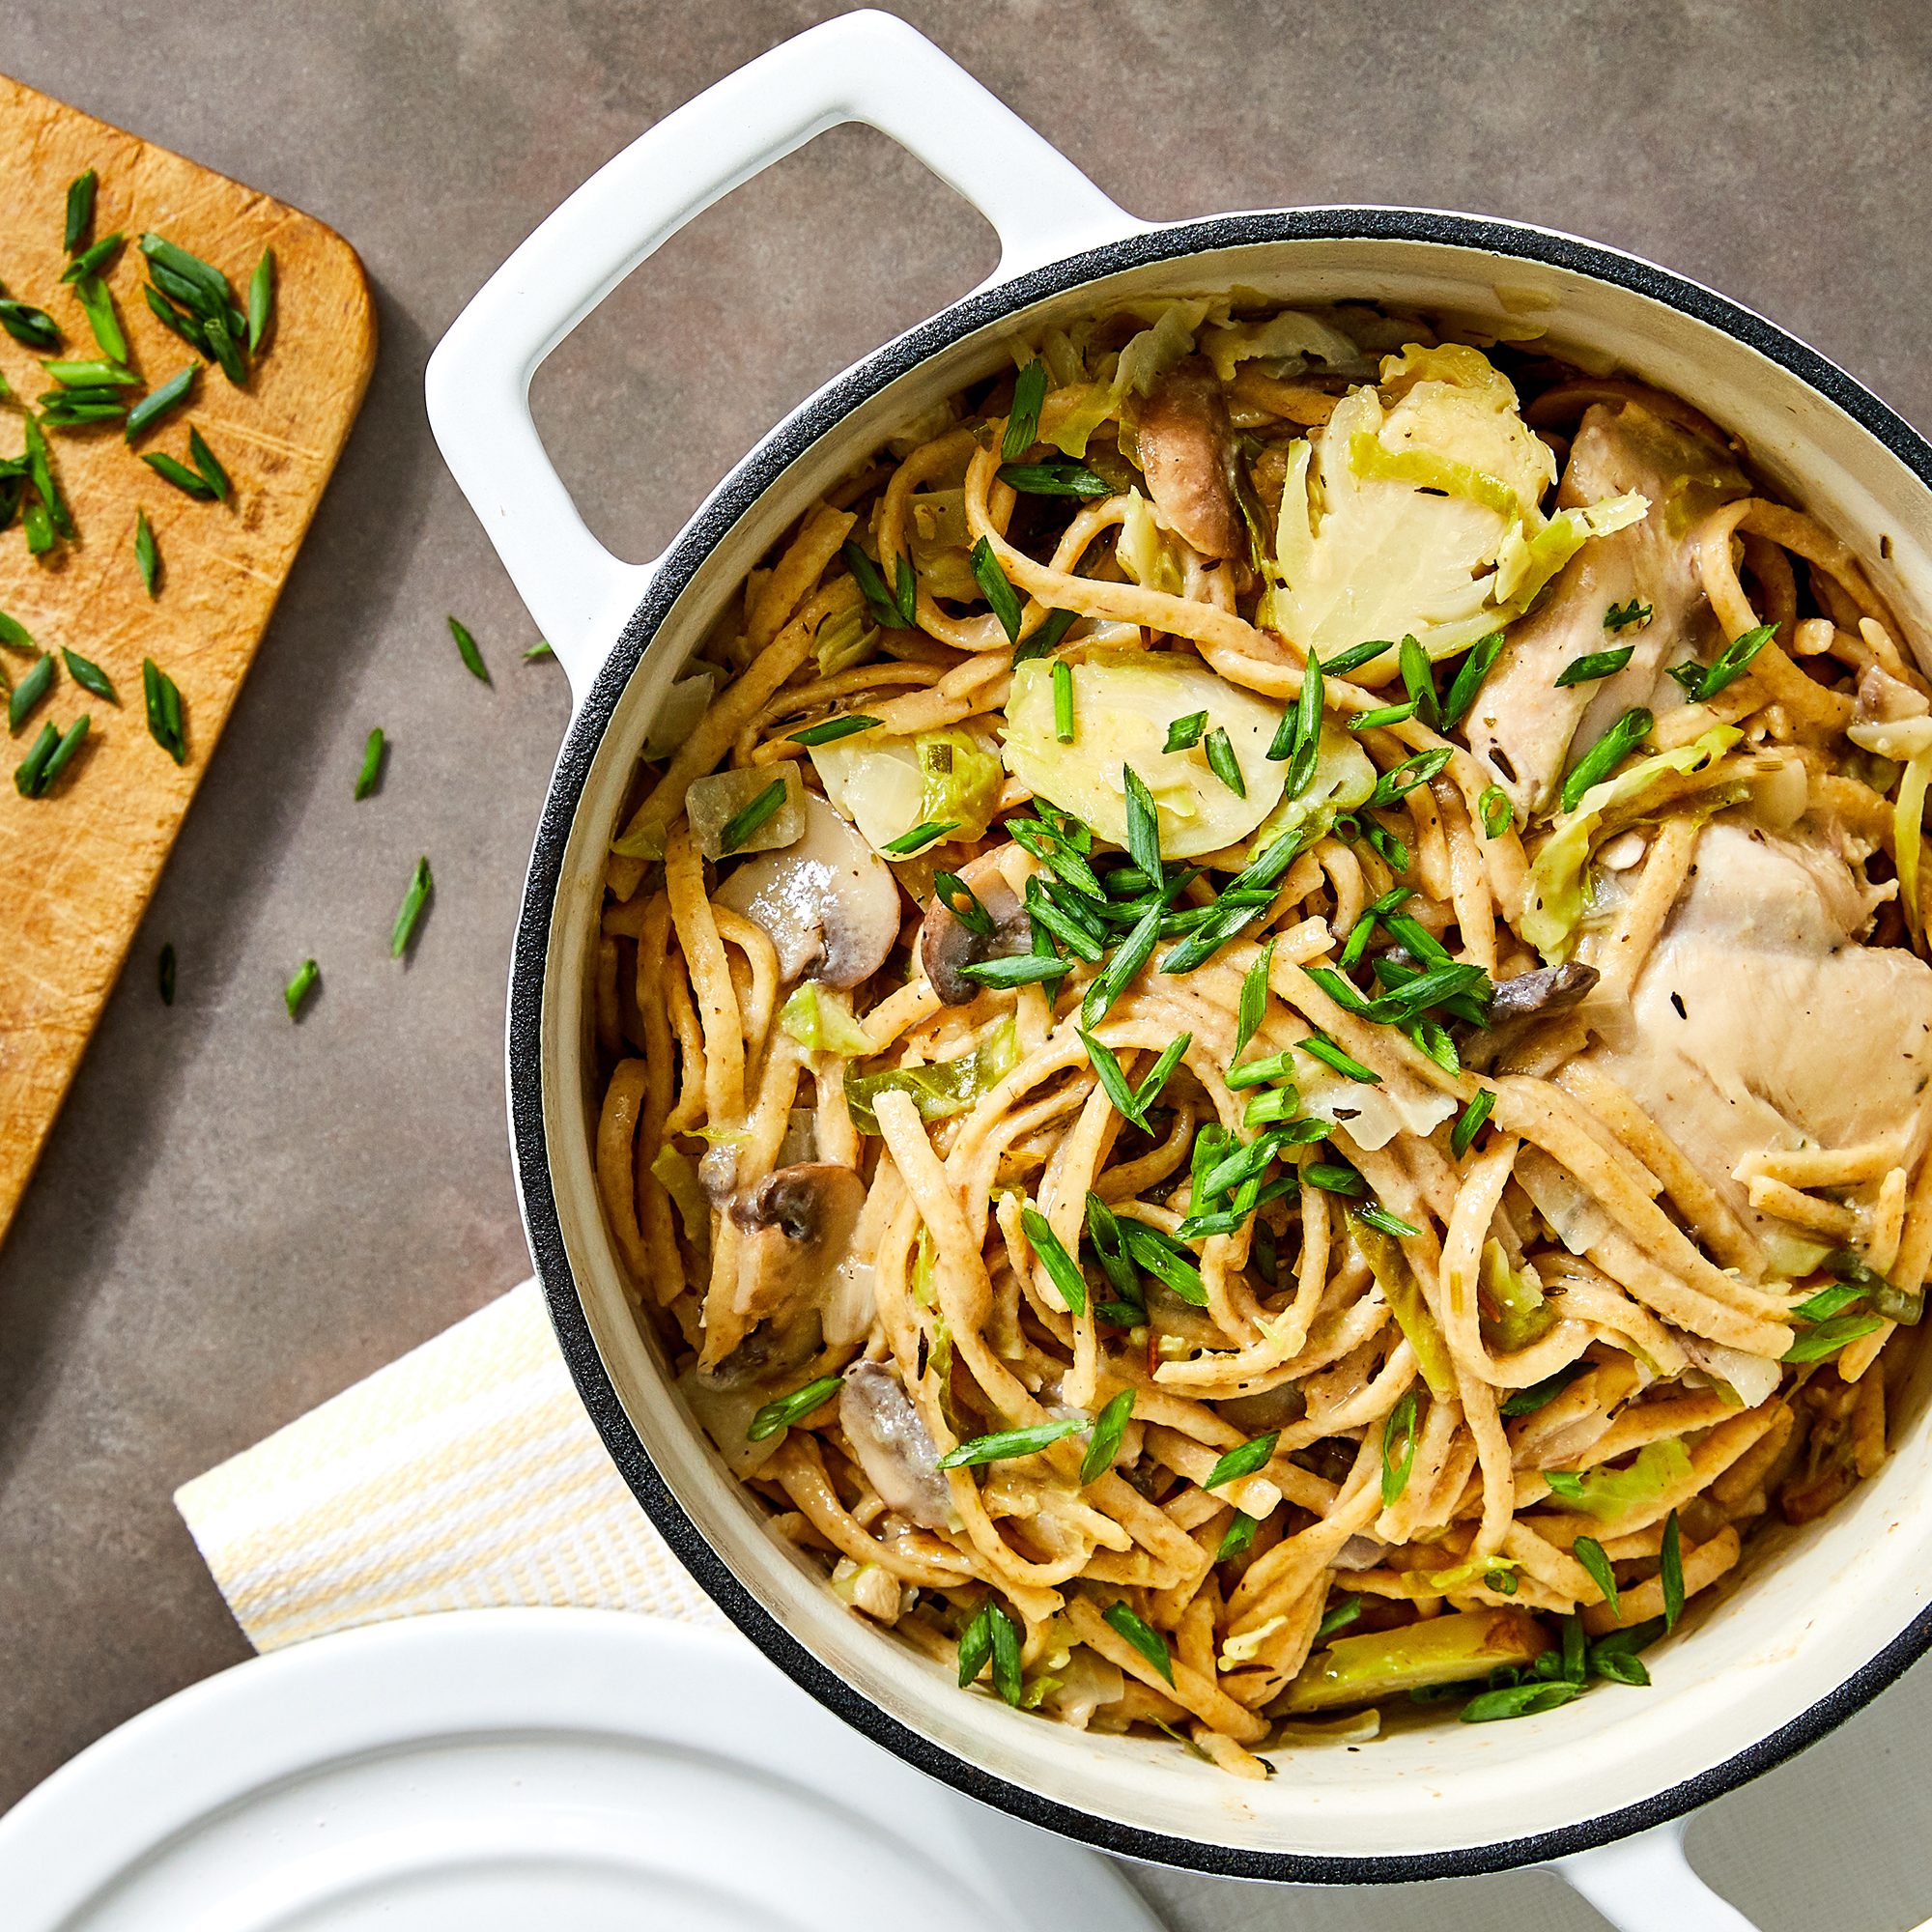 Creamy Chicken, Brussels Sprouts & Mushrooms One-Pot Pasta